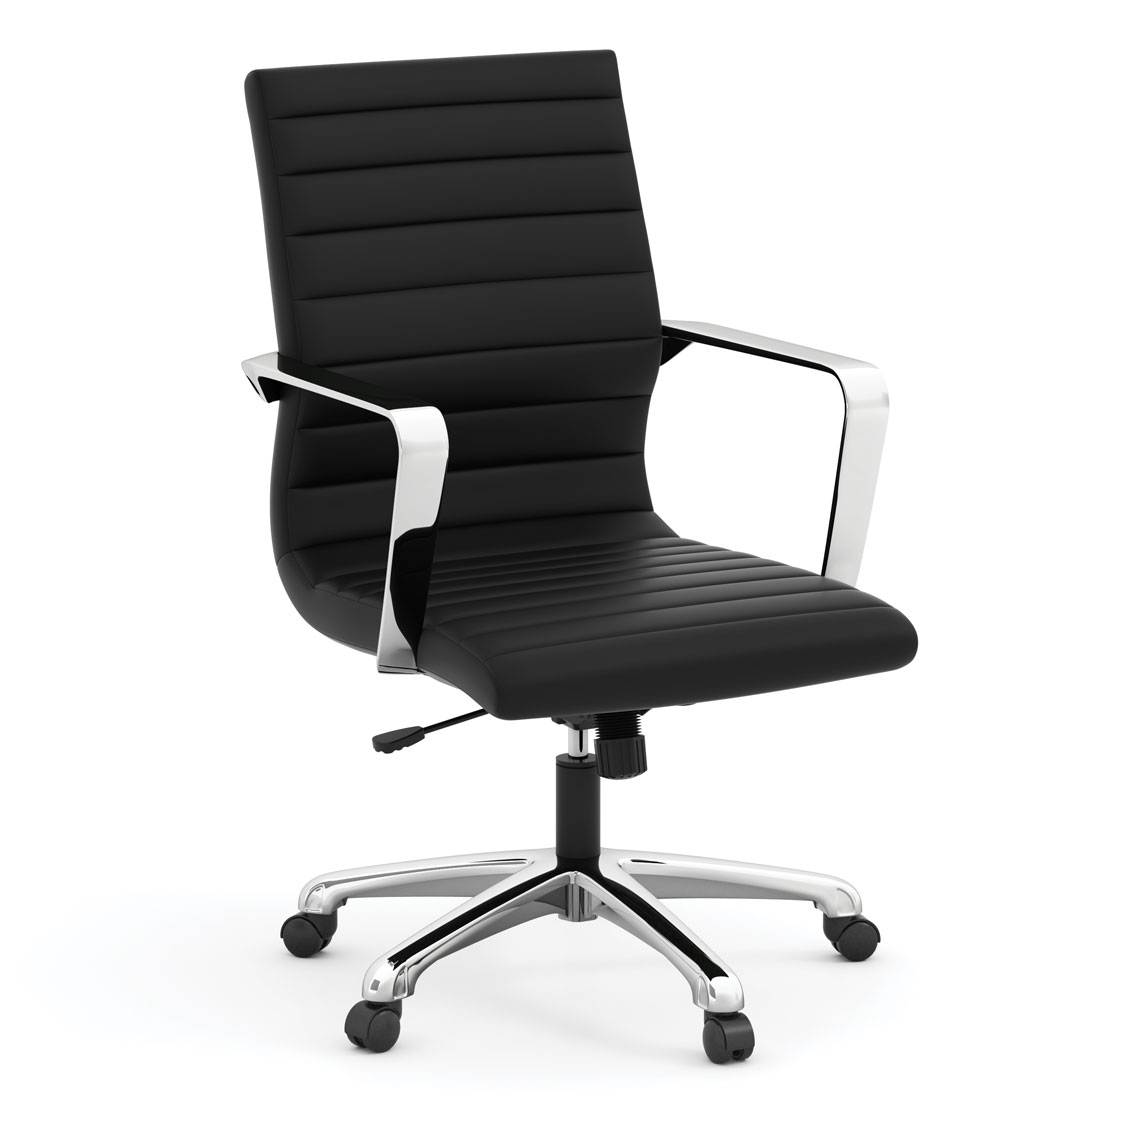 Executive Mid Back Chair with Chrome Frame